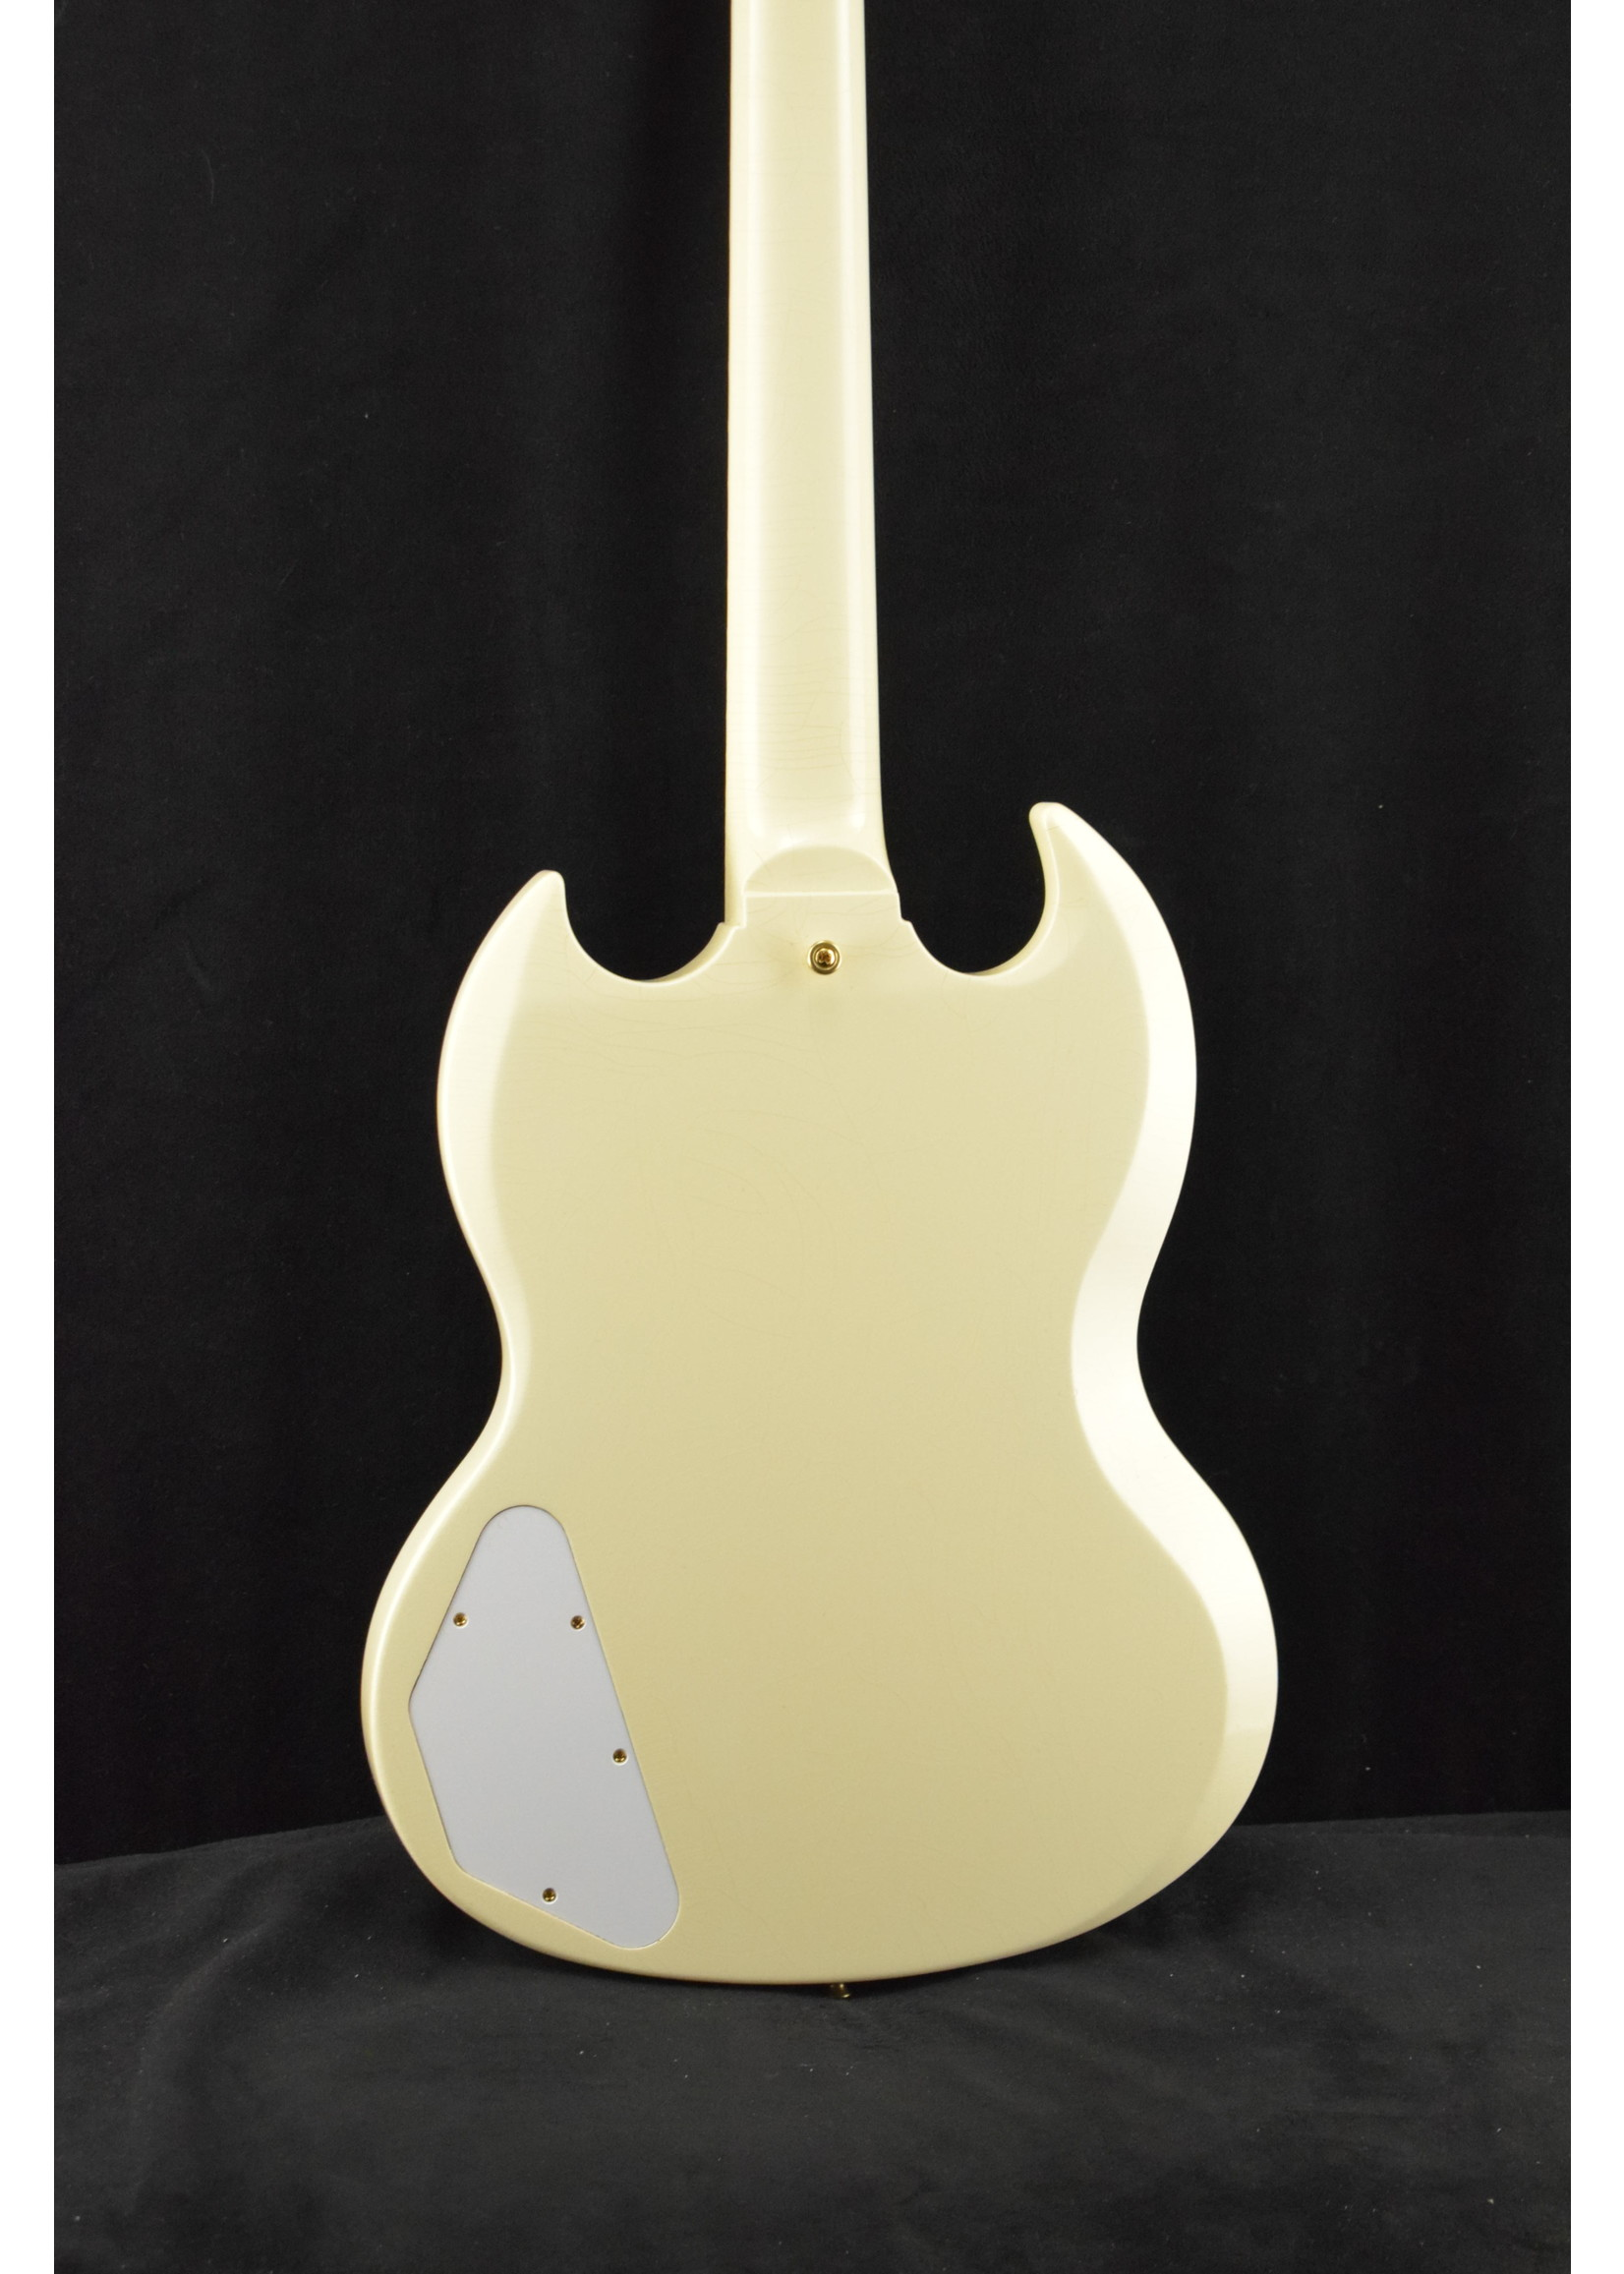 Gibson Gibson Murphy Lab 1963 Les Paul SG Custom With Maestro Vibrola Classic White Ultra Light Aged